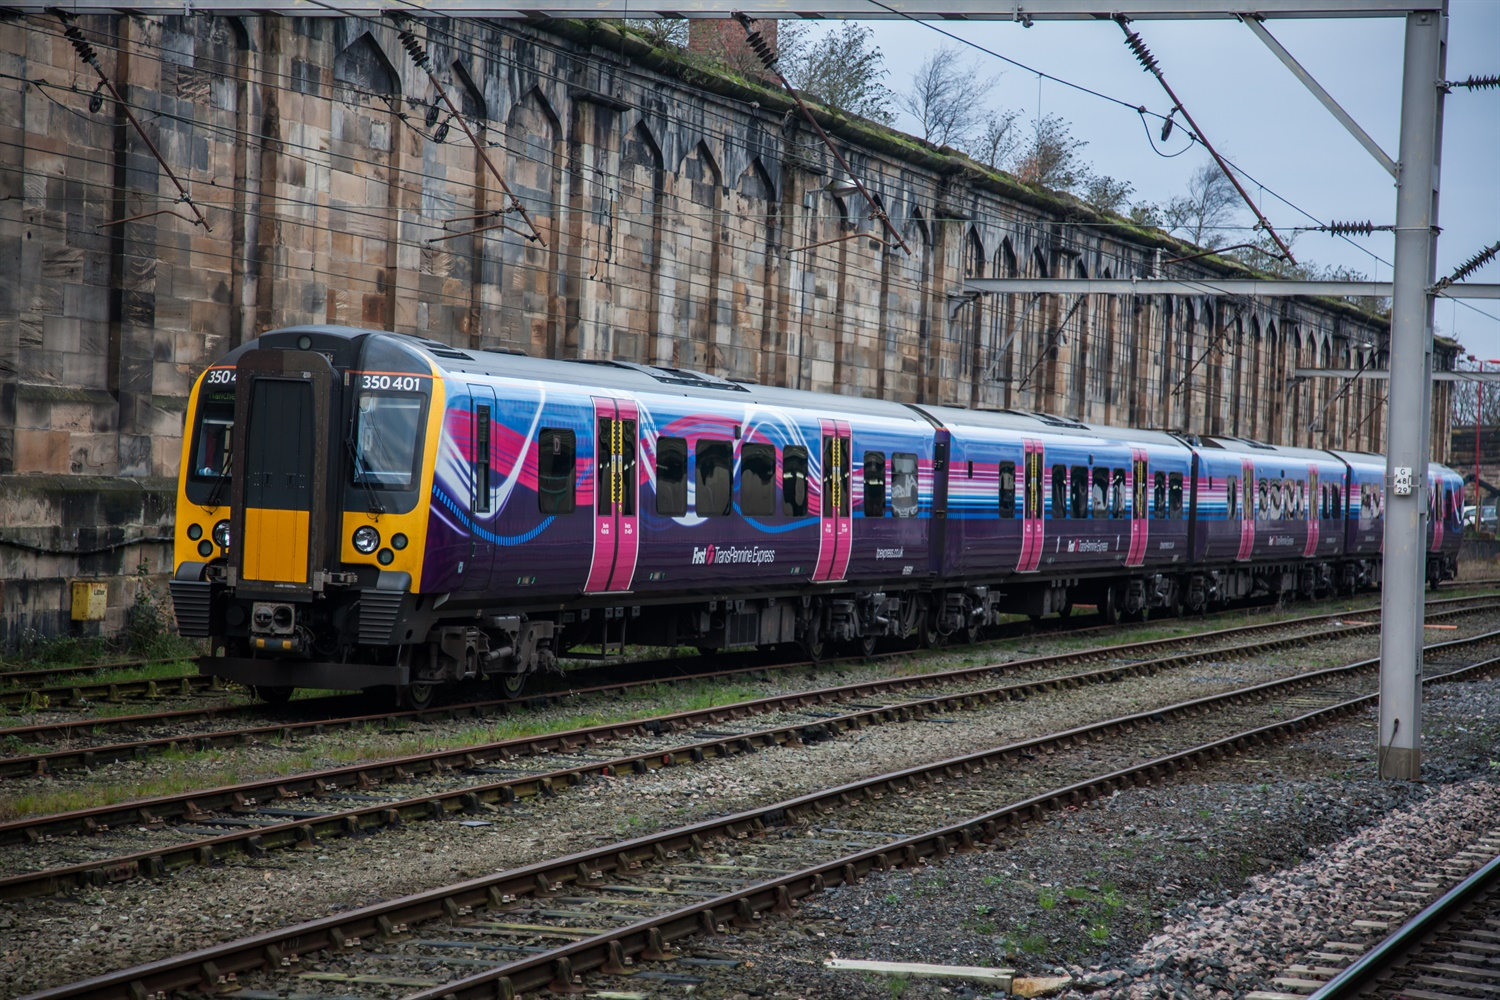 Urgent clarity needed amid claims that TransPennine electrification will be scrapped